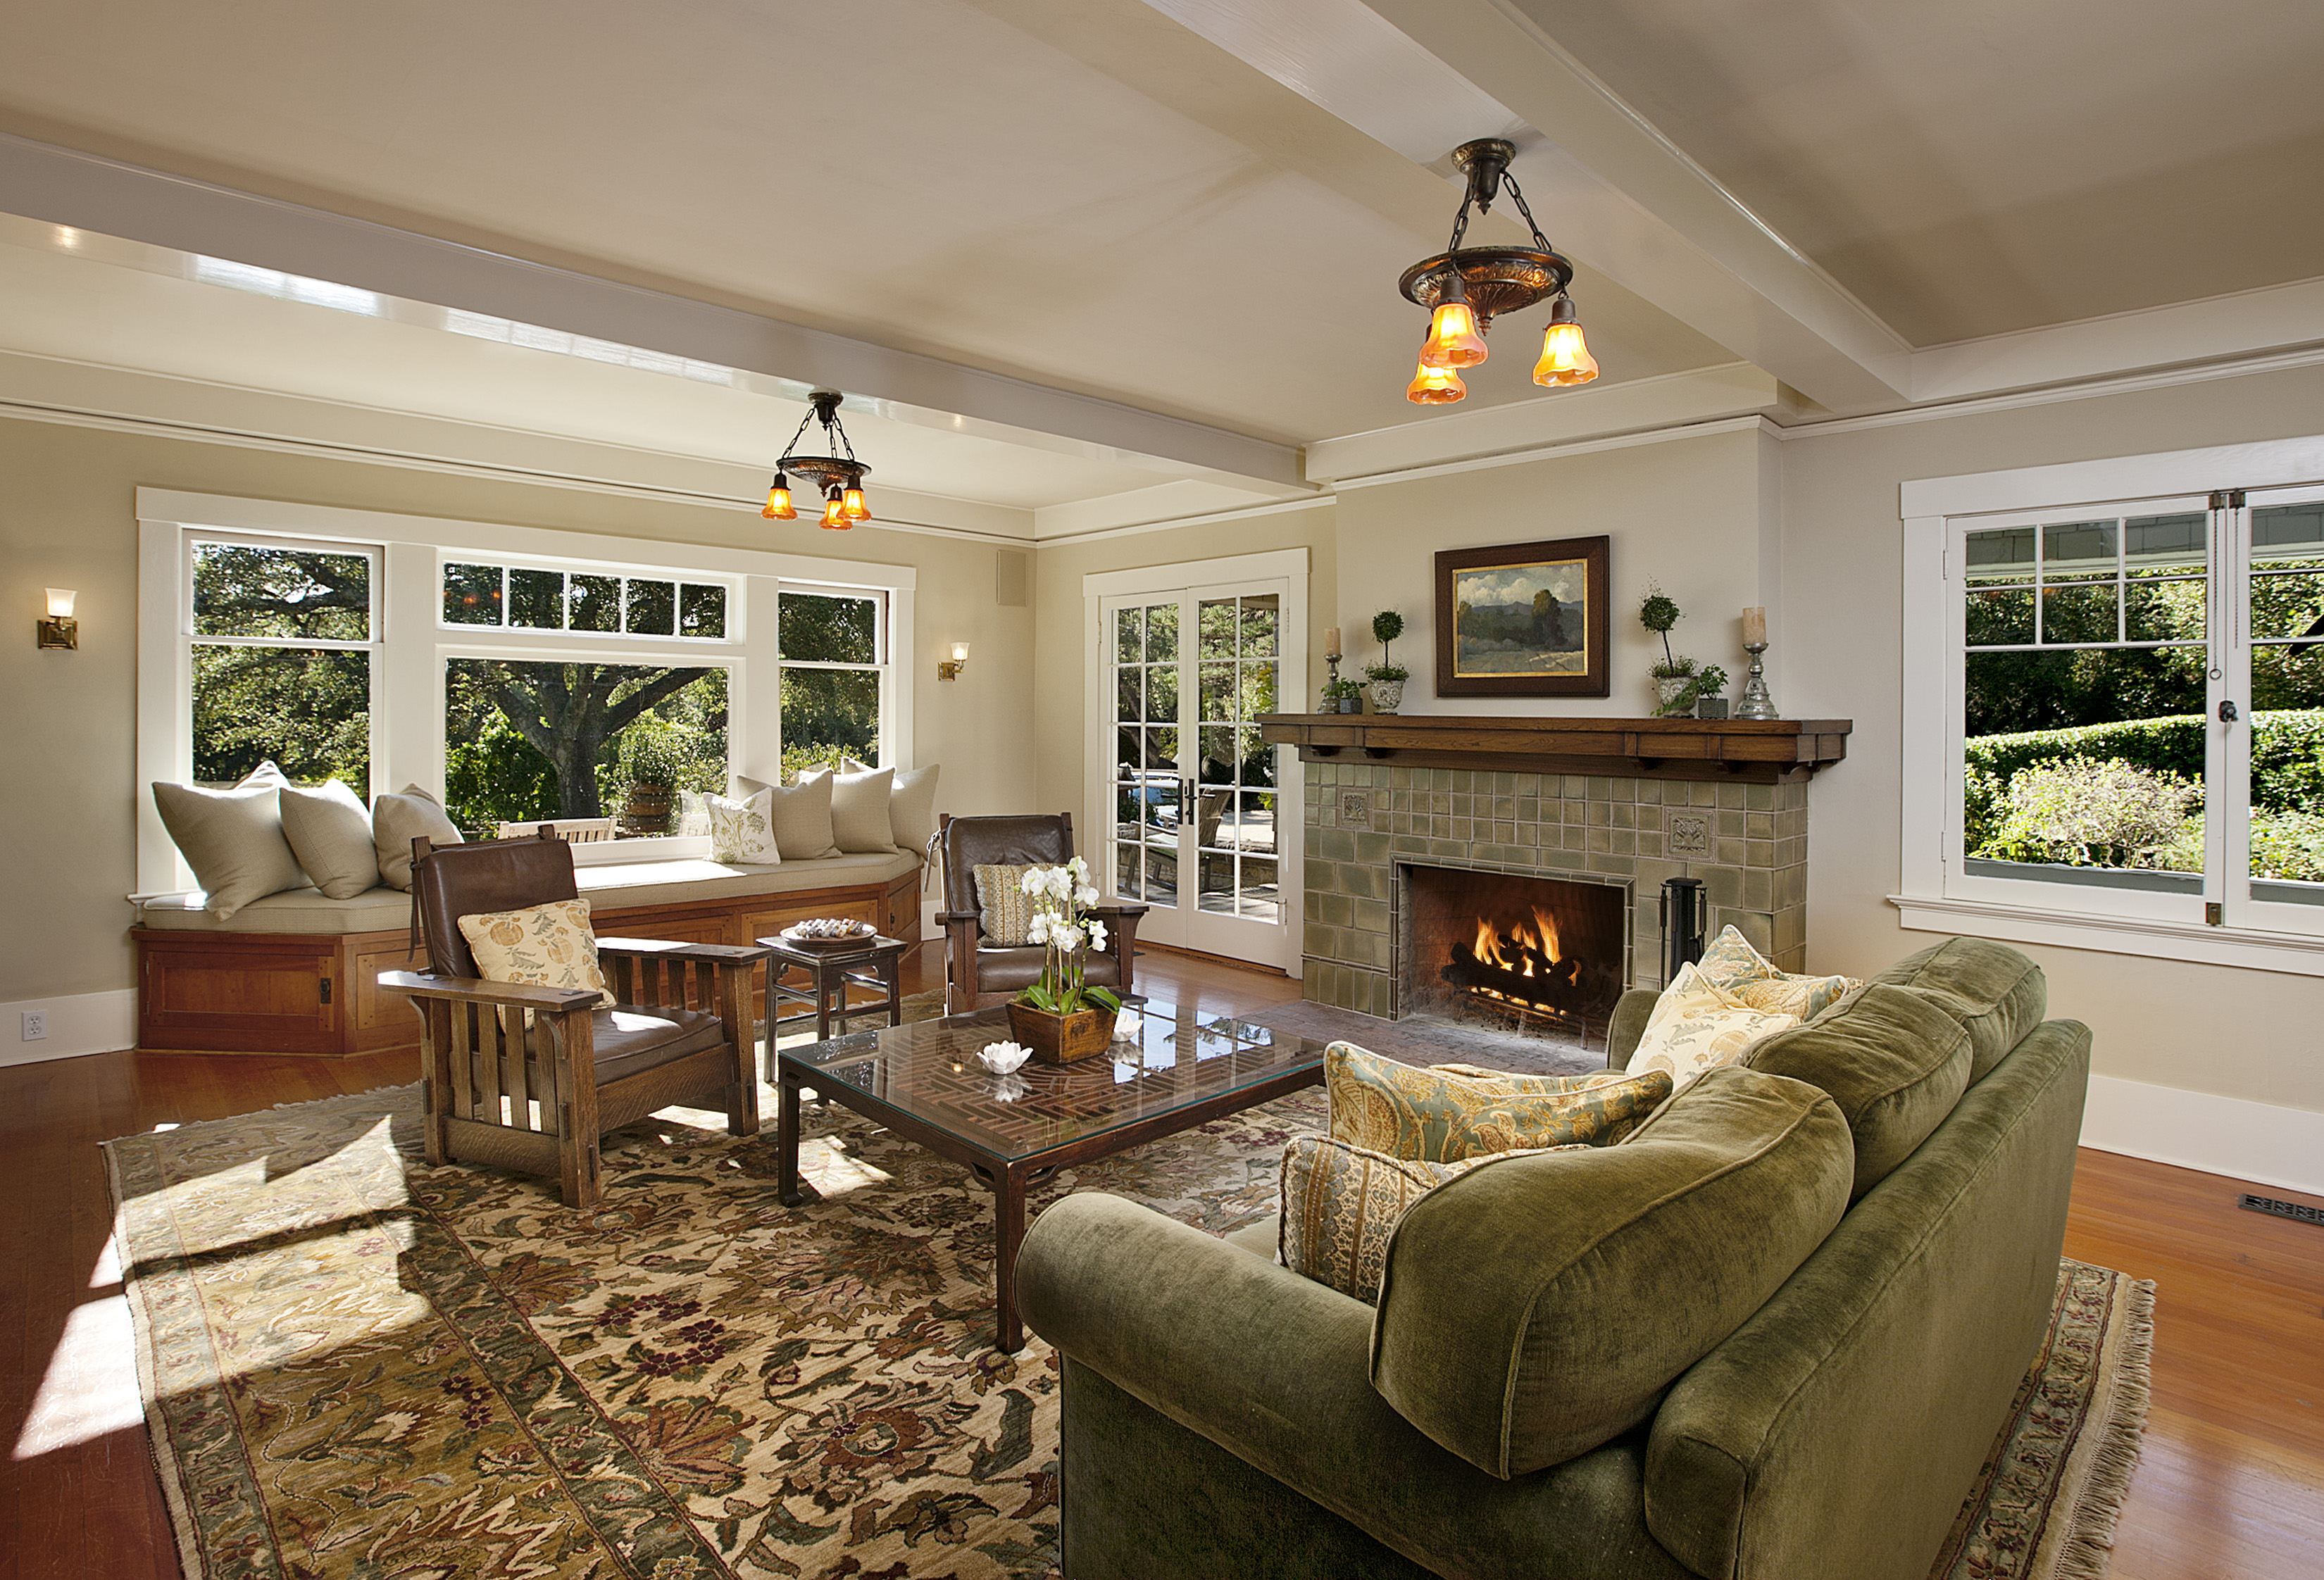 Popular home styles for 2012 montecito real estate - Interior design styles for small space property ...